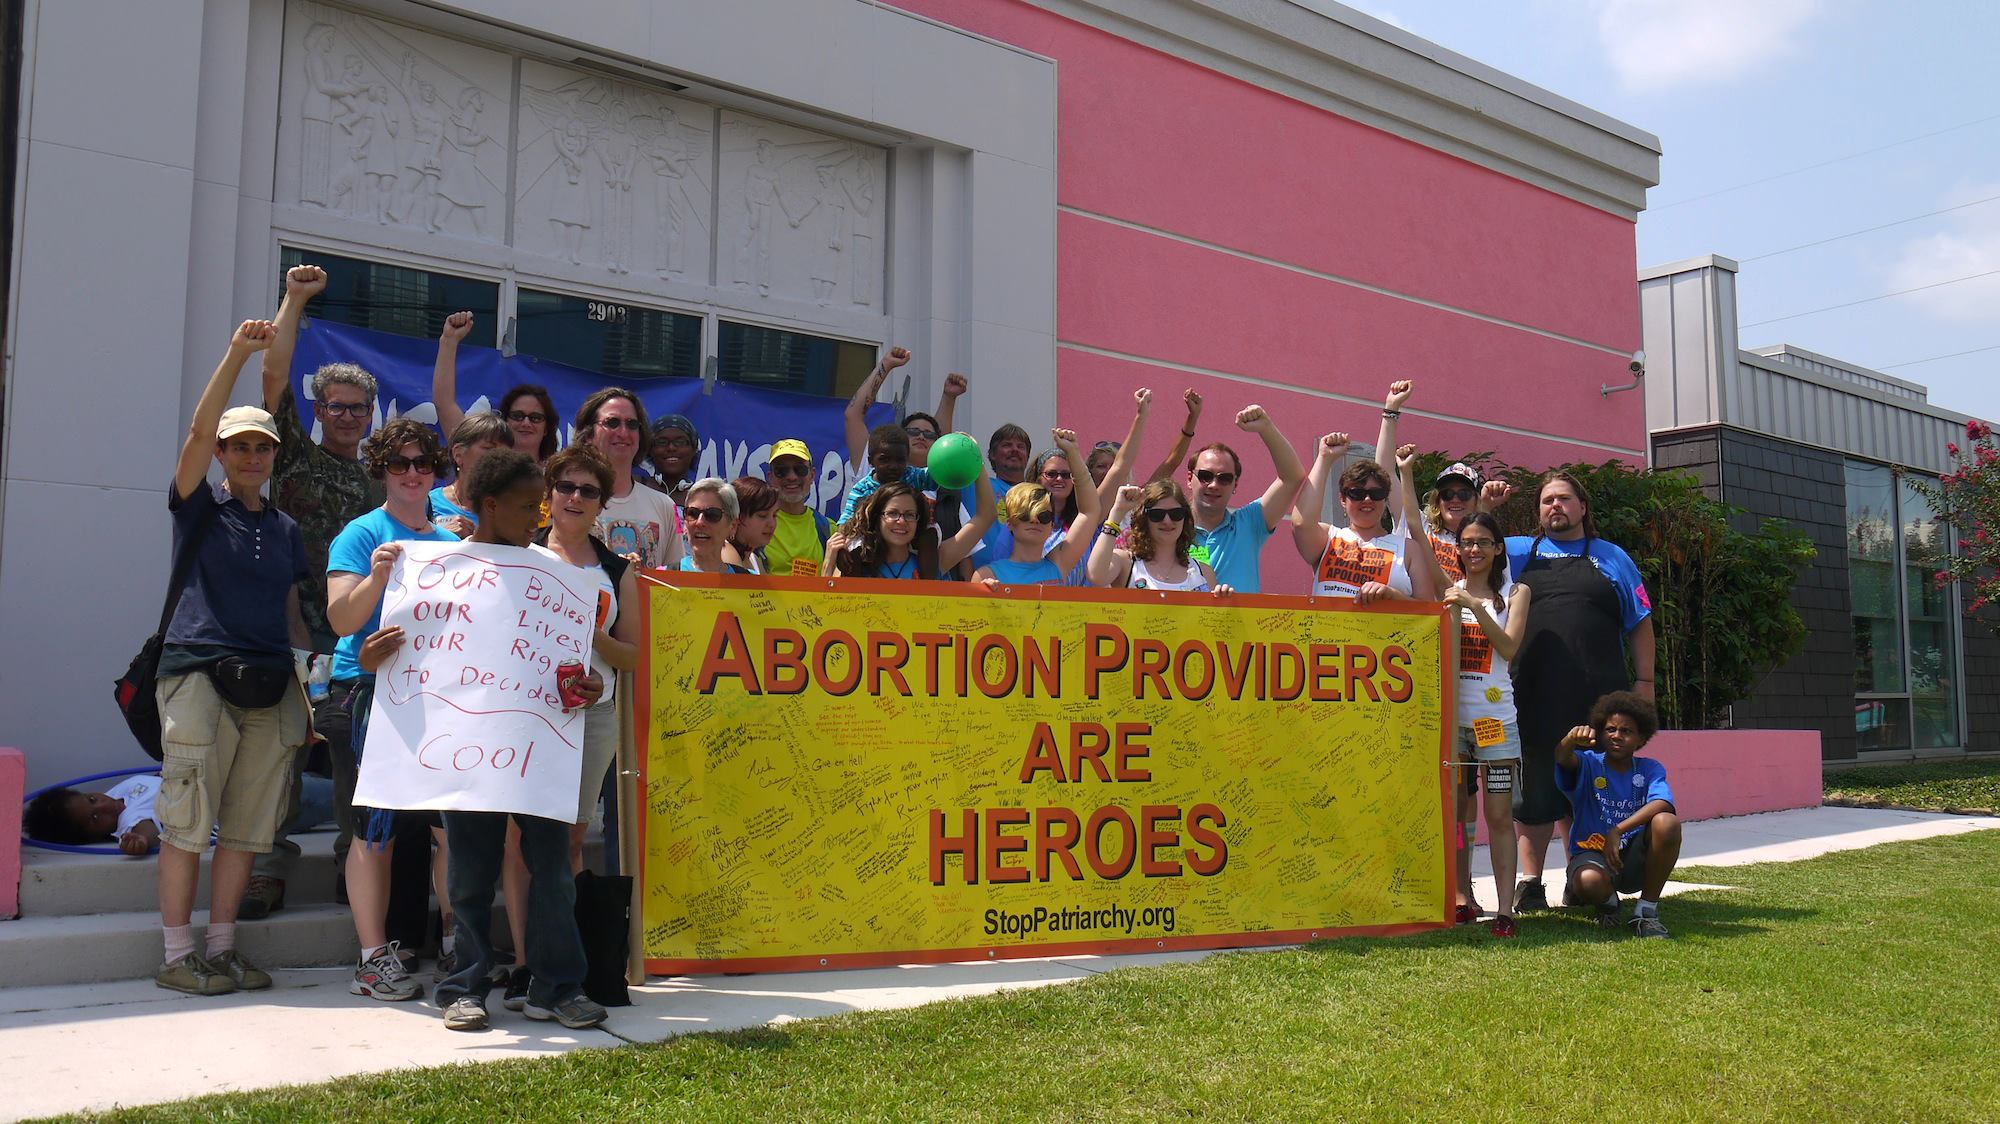 abortion providers